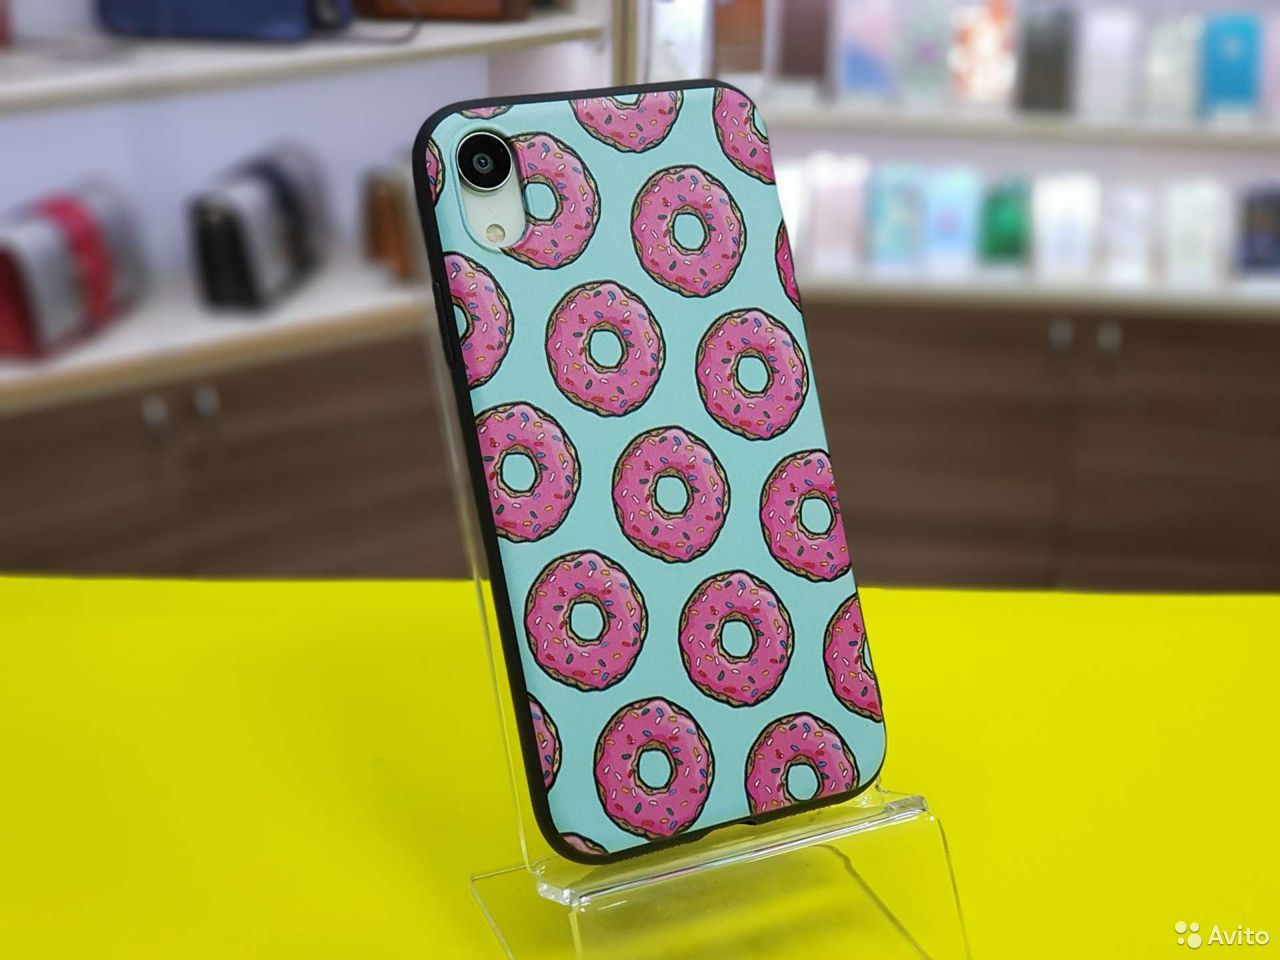 Case XR for iPhone